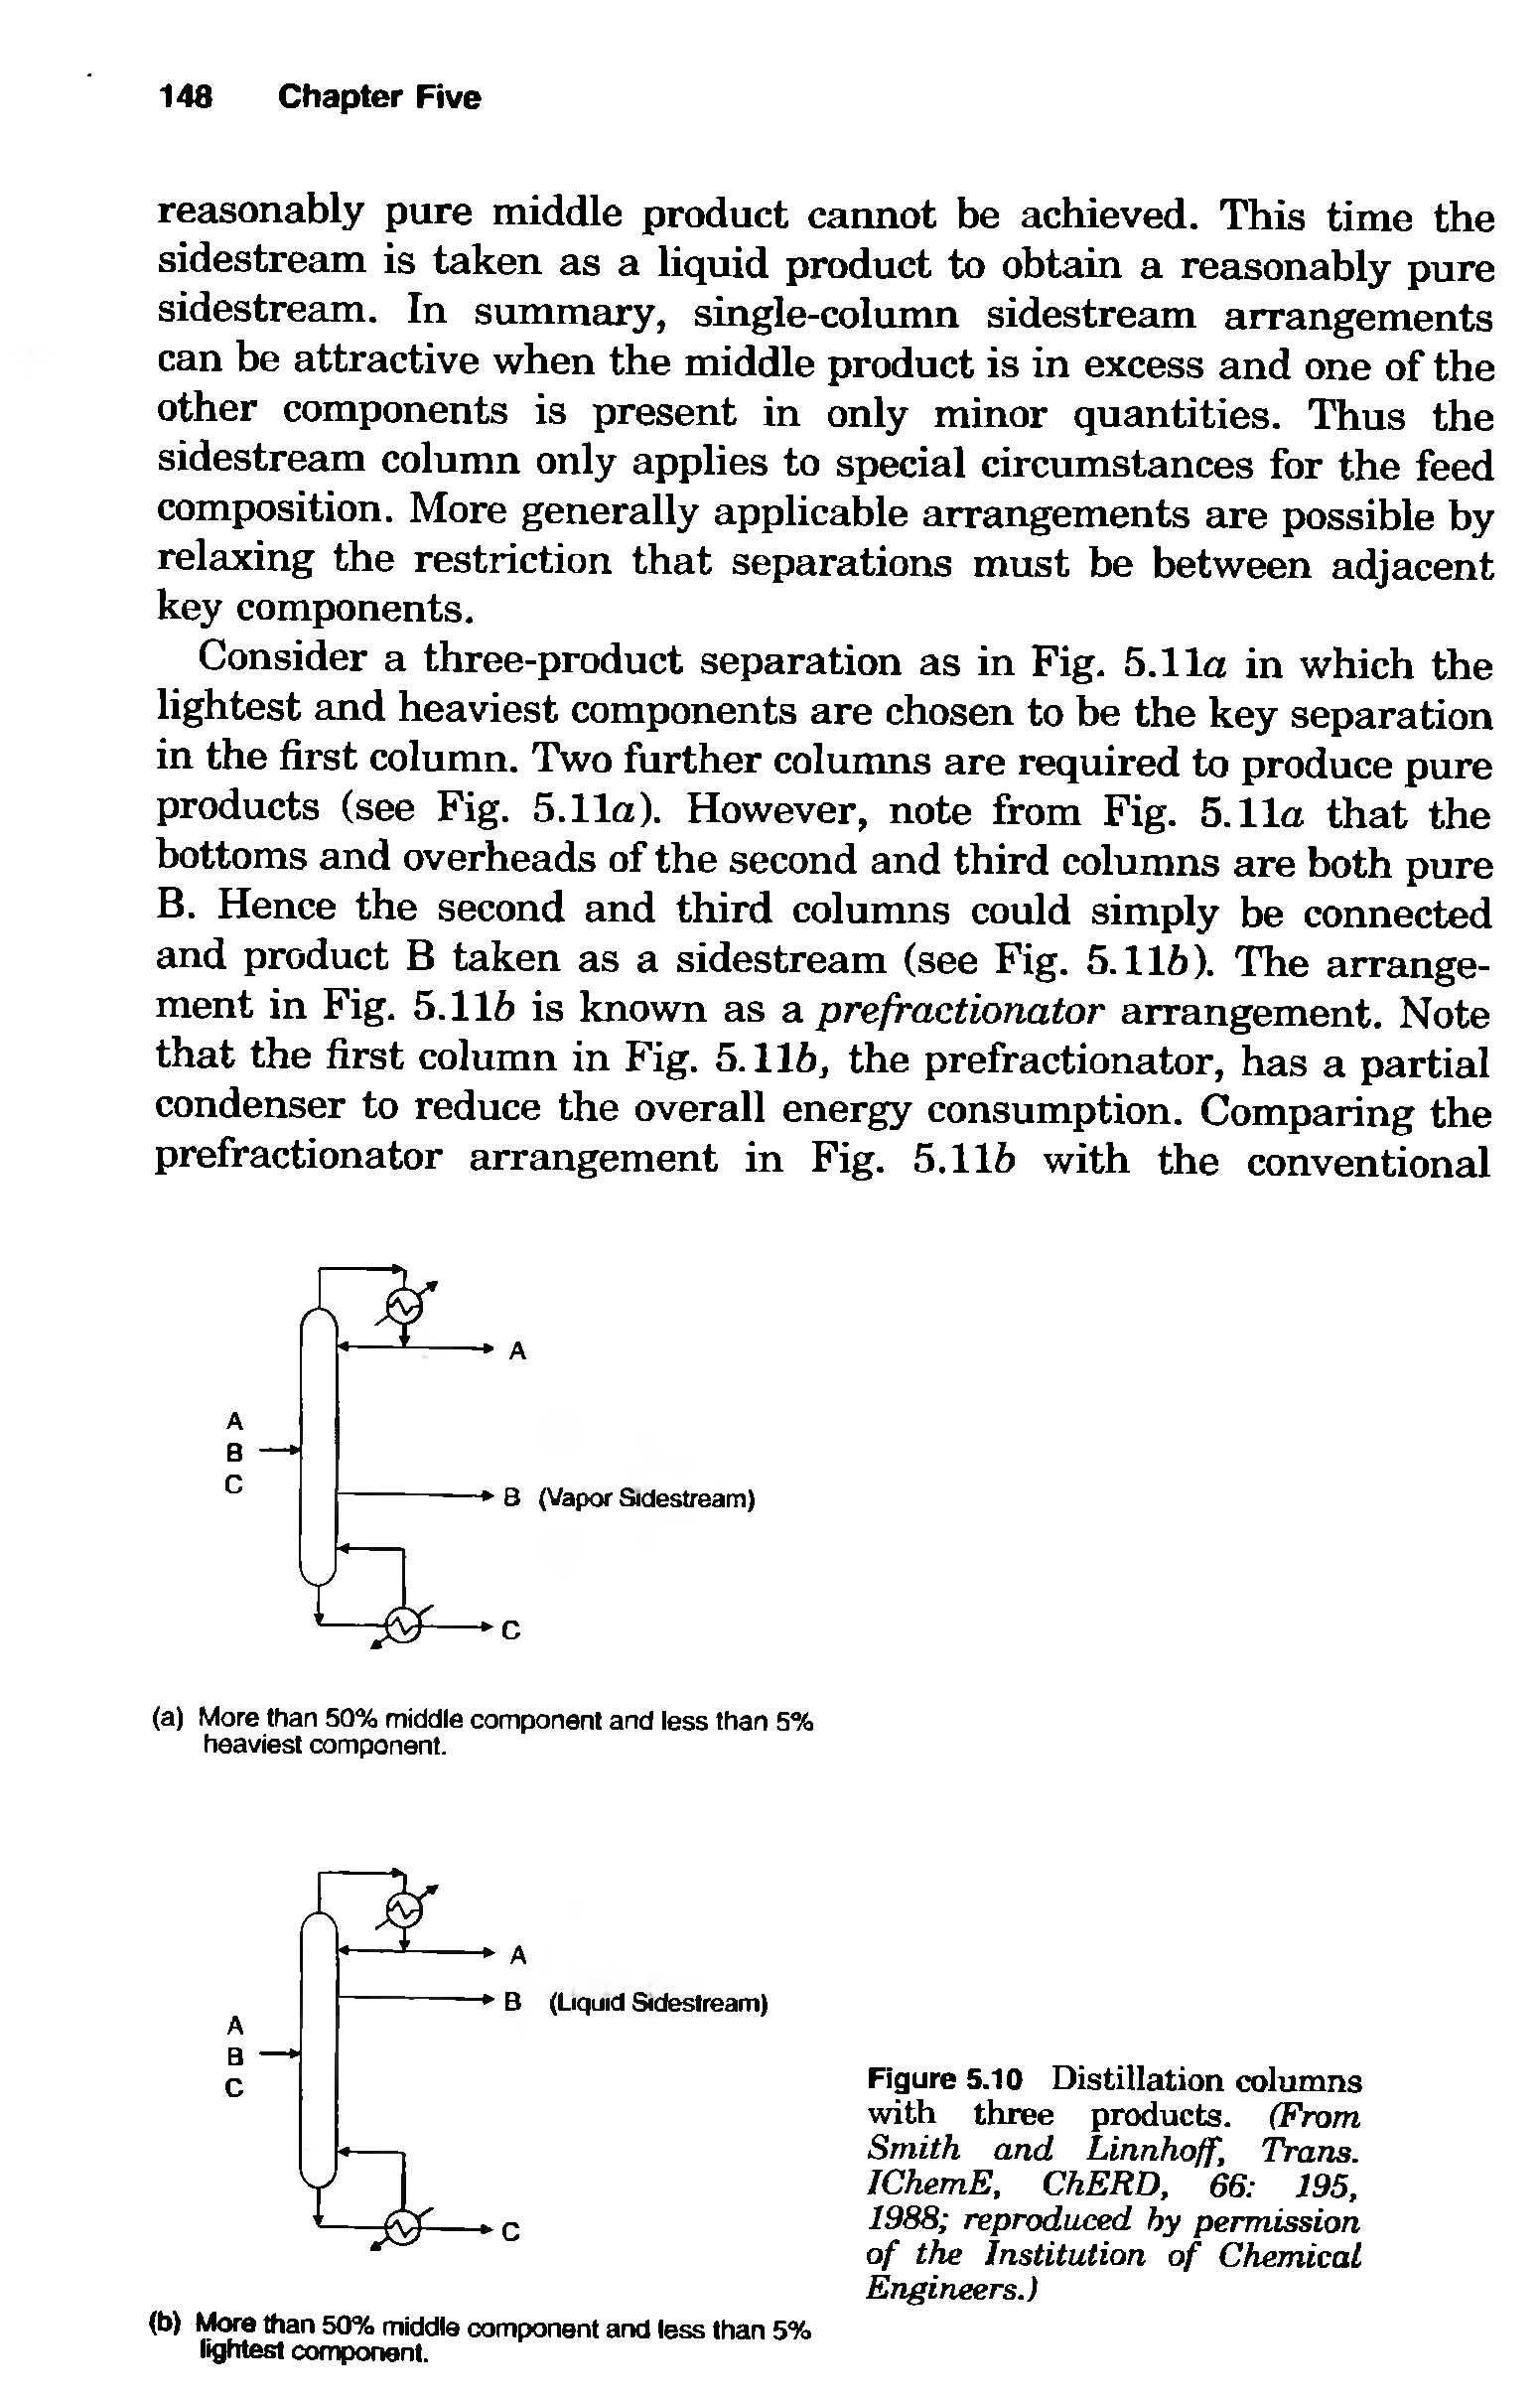 Figure 5.10 Distillation columns with three products. (From Smith and Linnhoff, TVans. IChemE, ChERD, 66 195. 1988 reproduced hy permission of the Institution of Chemical Engineers.)...